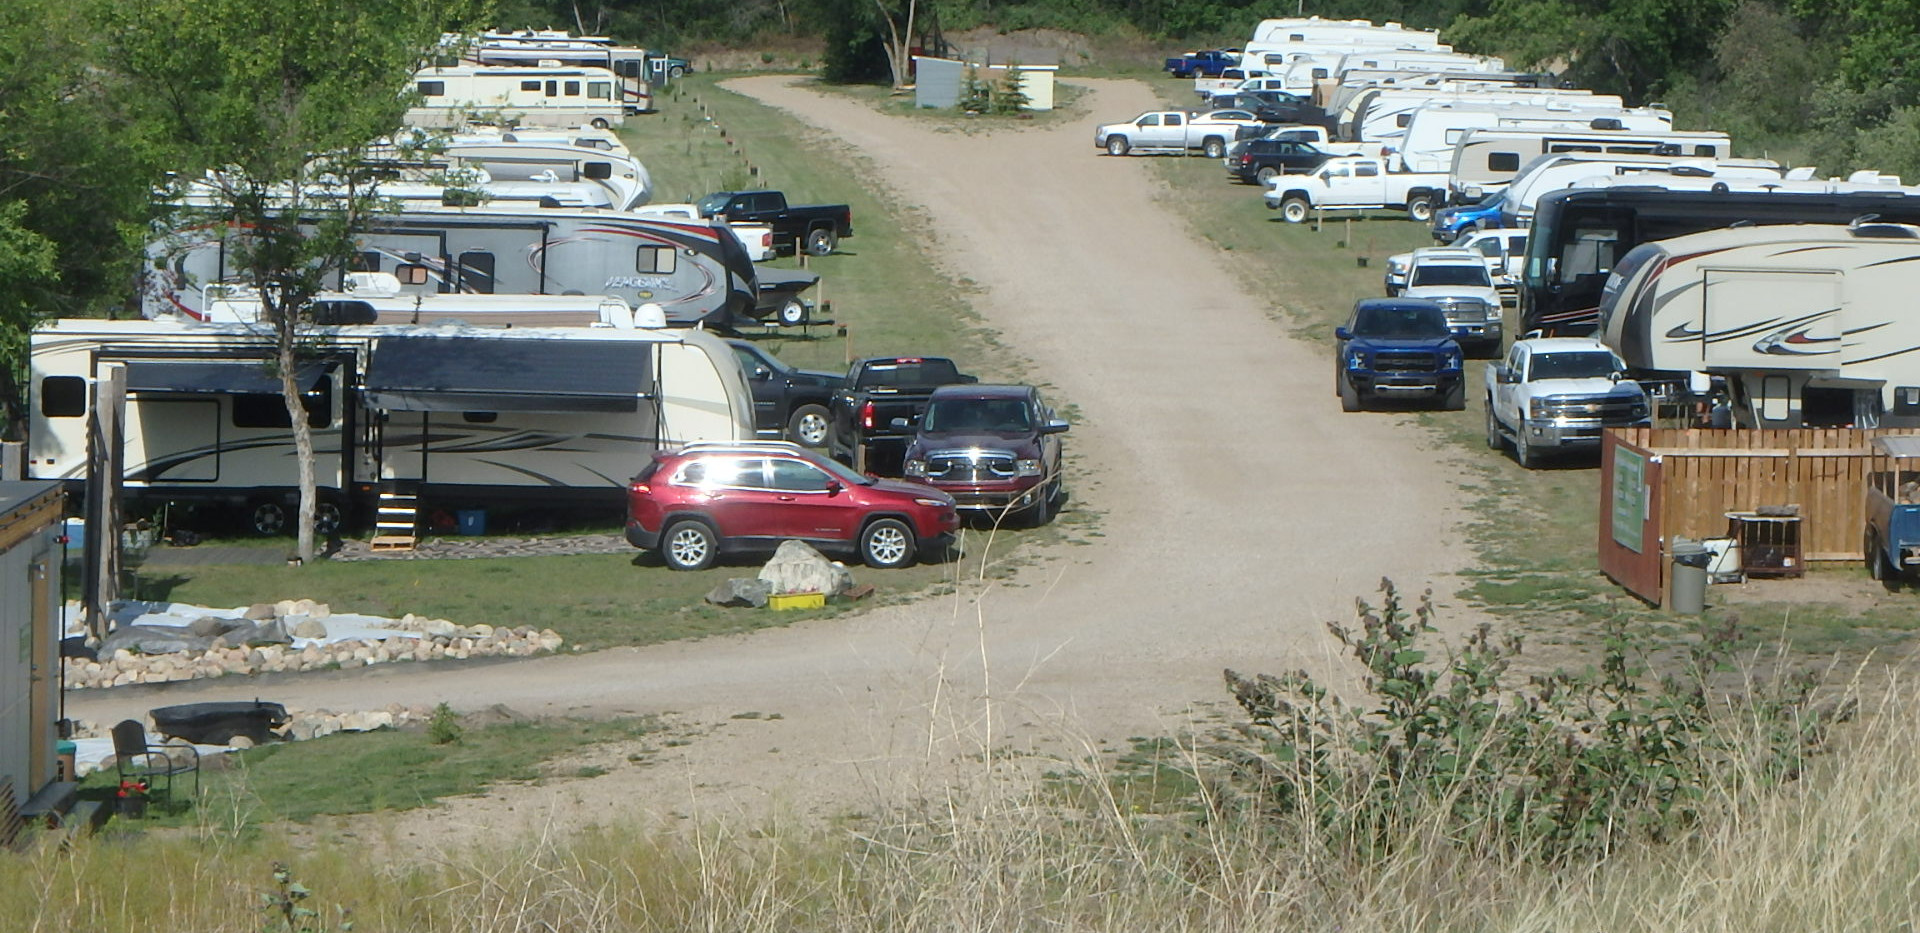 Overview of Campsite 2019